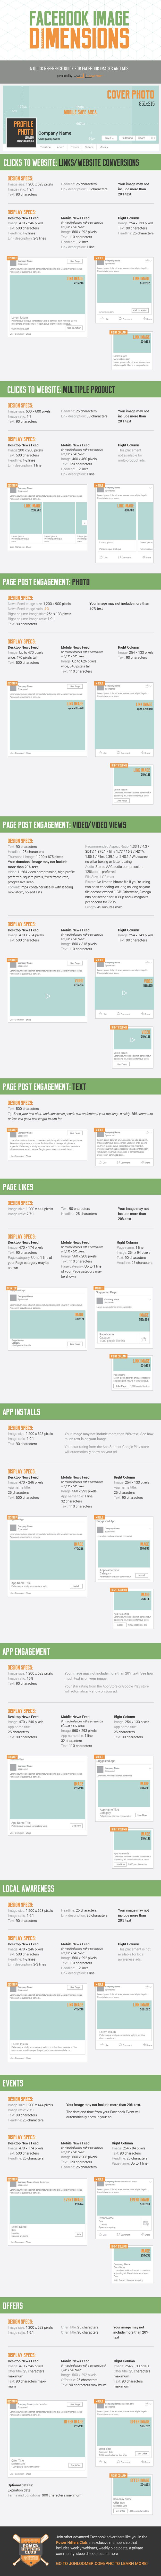 Advertising-Infographics-2015-Edition-All-Facebook-Image-Dimensions-Ads Advertising Infographics : [2015 Edition] All #Facebook Image Dimensions: Ads, Posts, Timeline - #Infographic